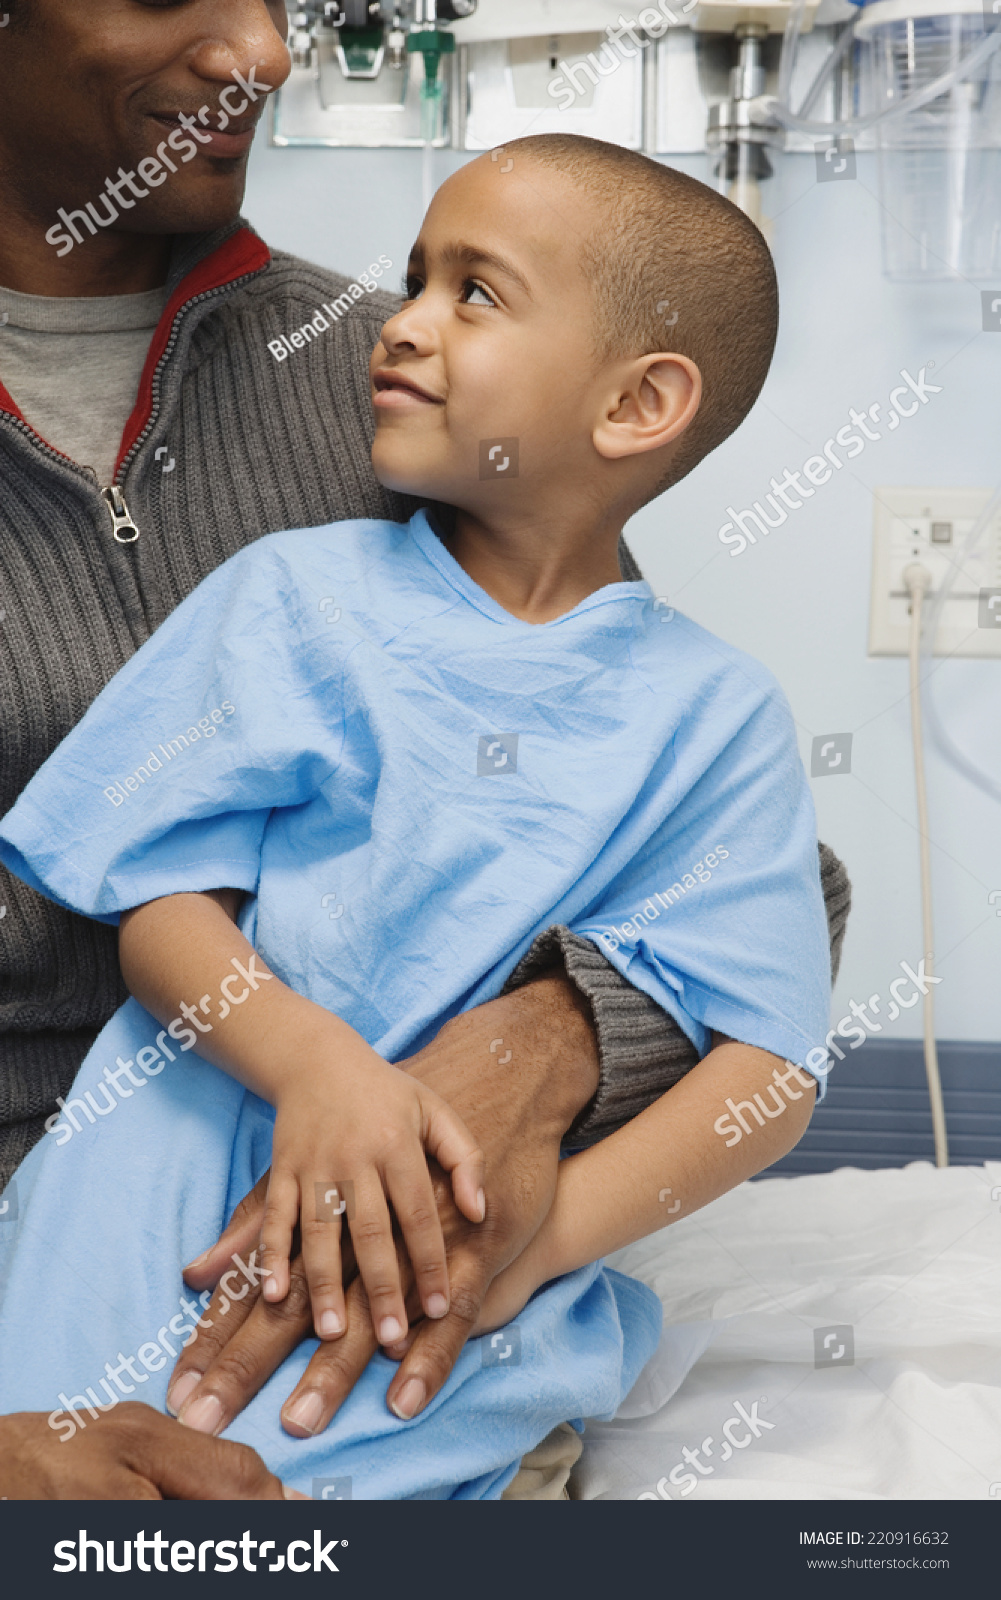 African Boy Hospital Gown Sitting On Stock Photo (Edit Now ...